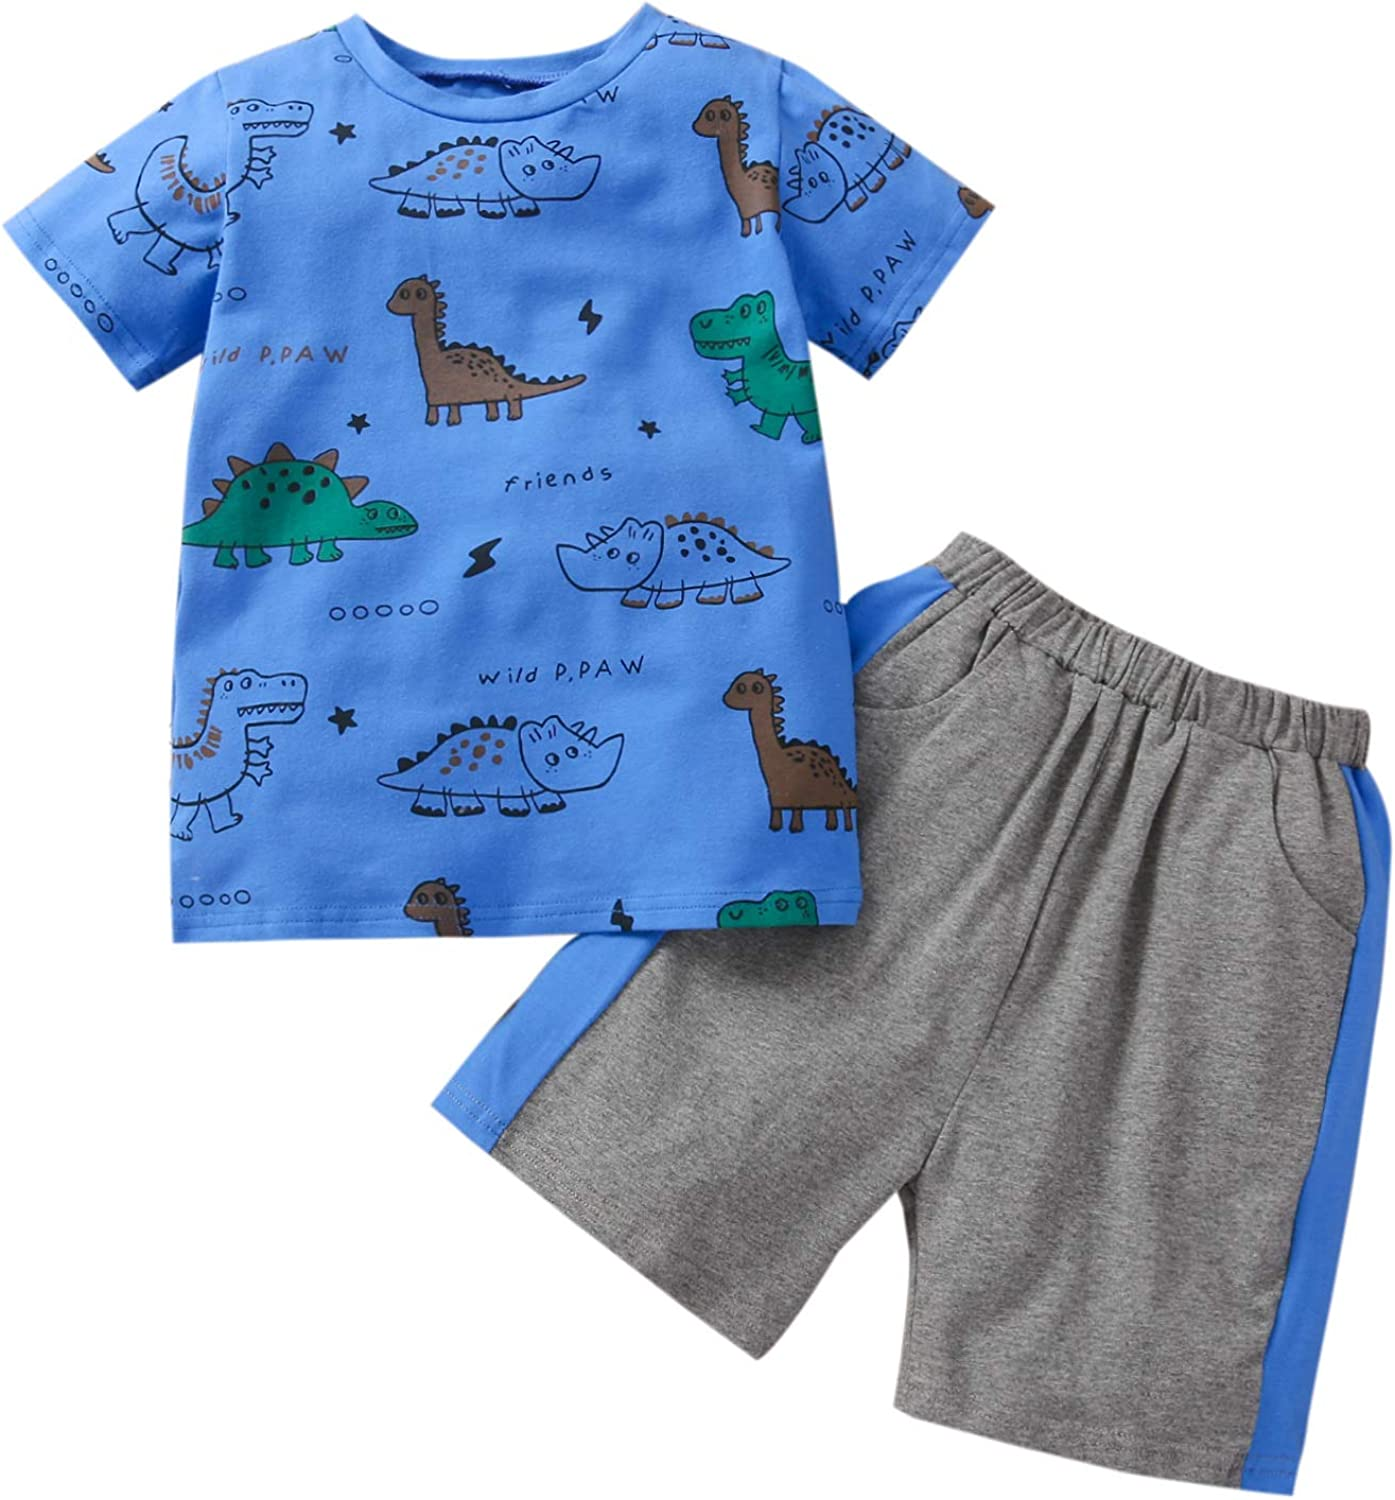 Kids Toddler Baby Boy Spring Summer Clothes Short Sleeve Dinosaur T-Shirt Top and Shorts Pants 2PCS Causal Outfits Set (Blue Patched Side, 3-4 Years)